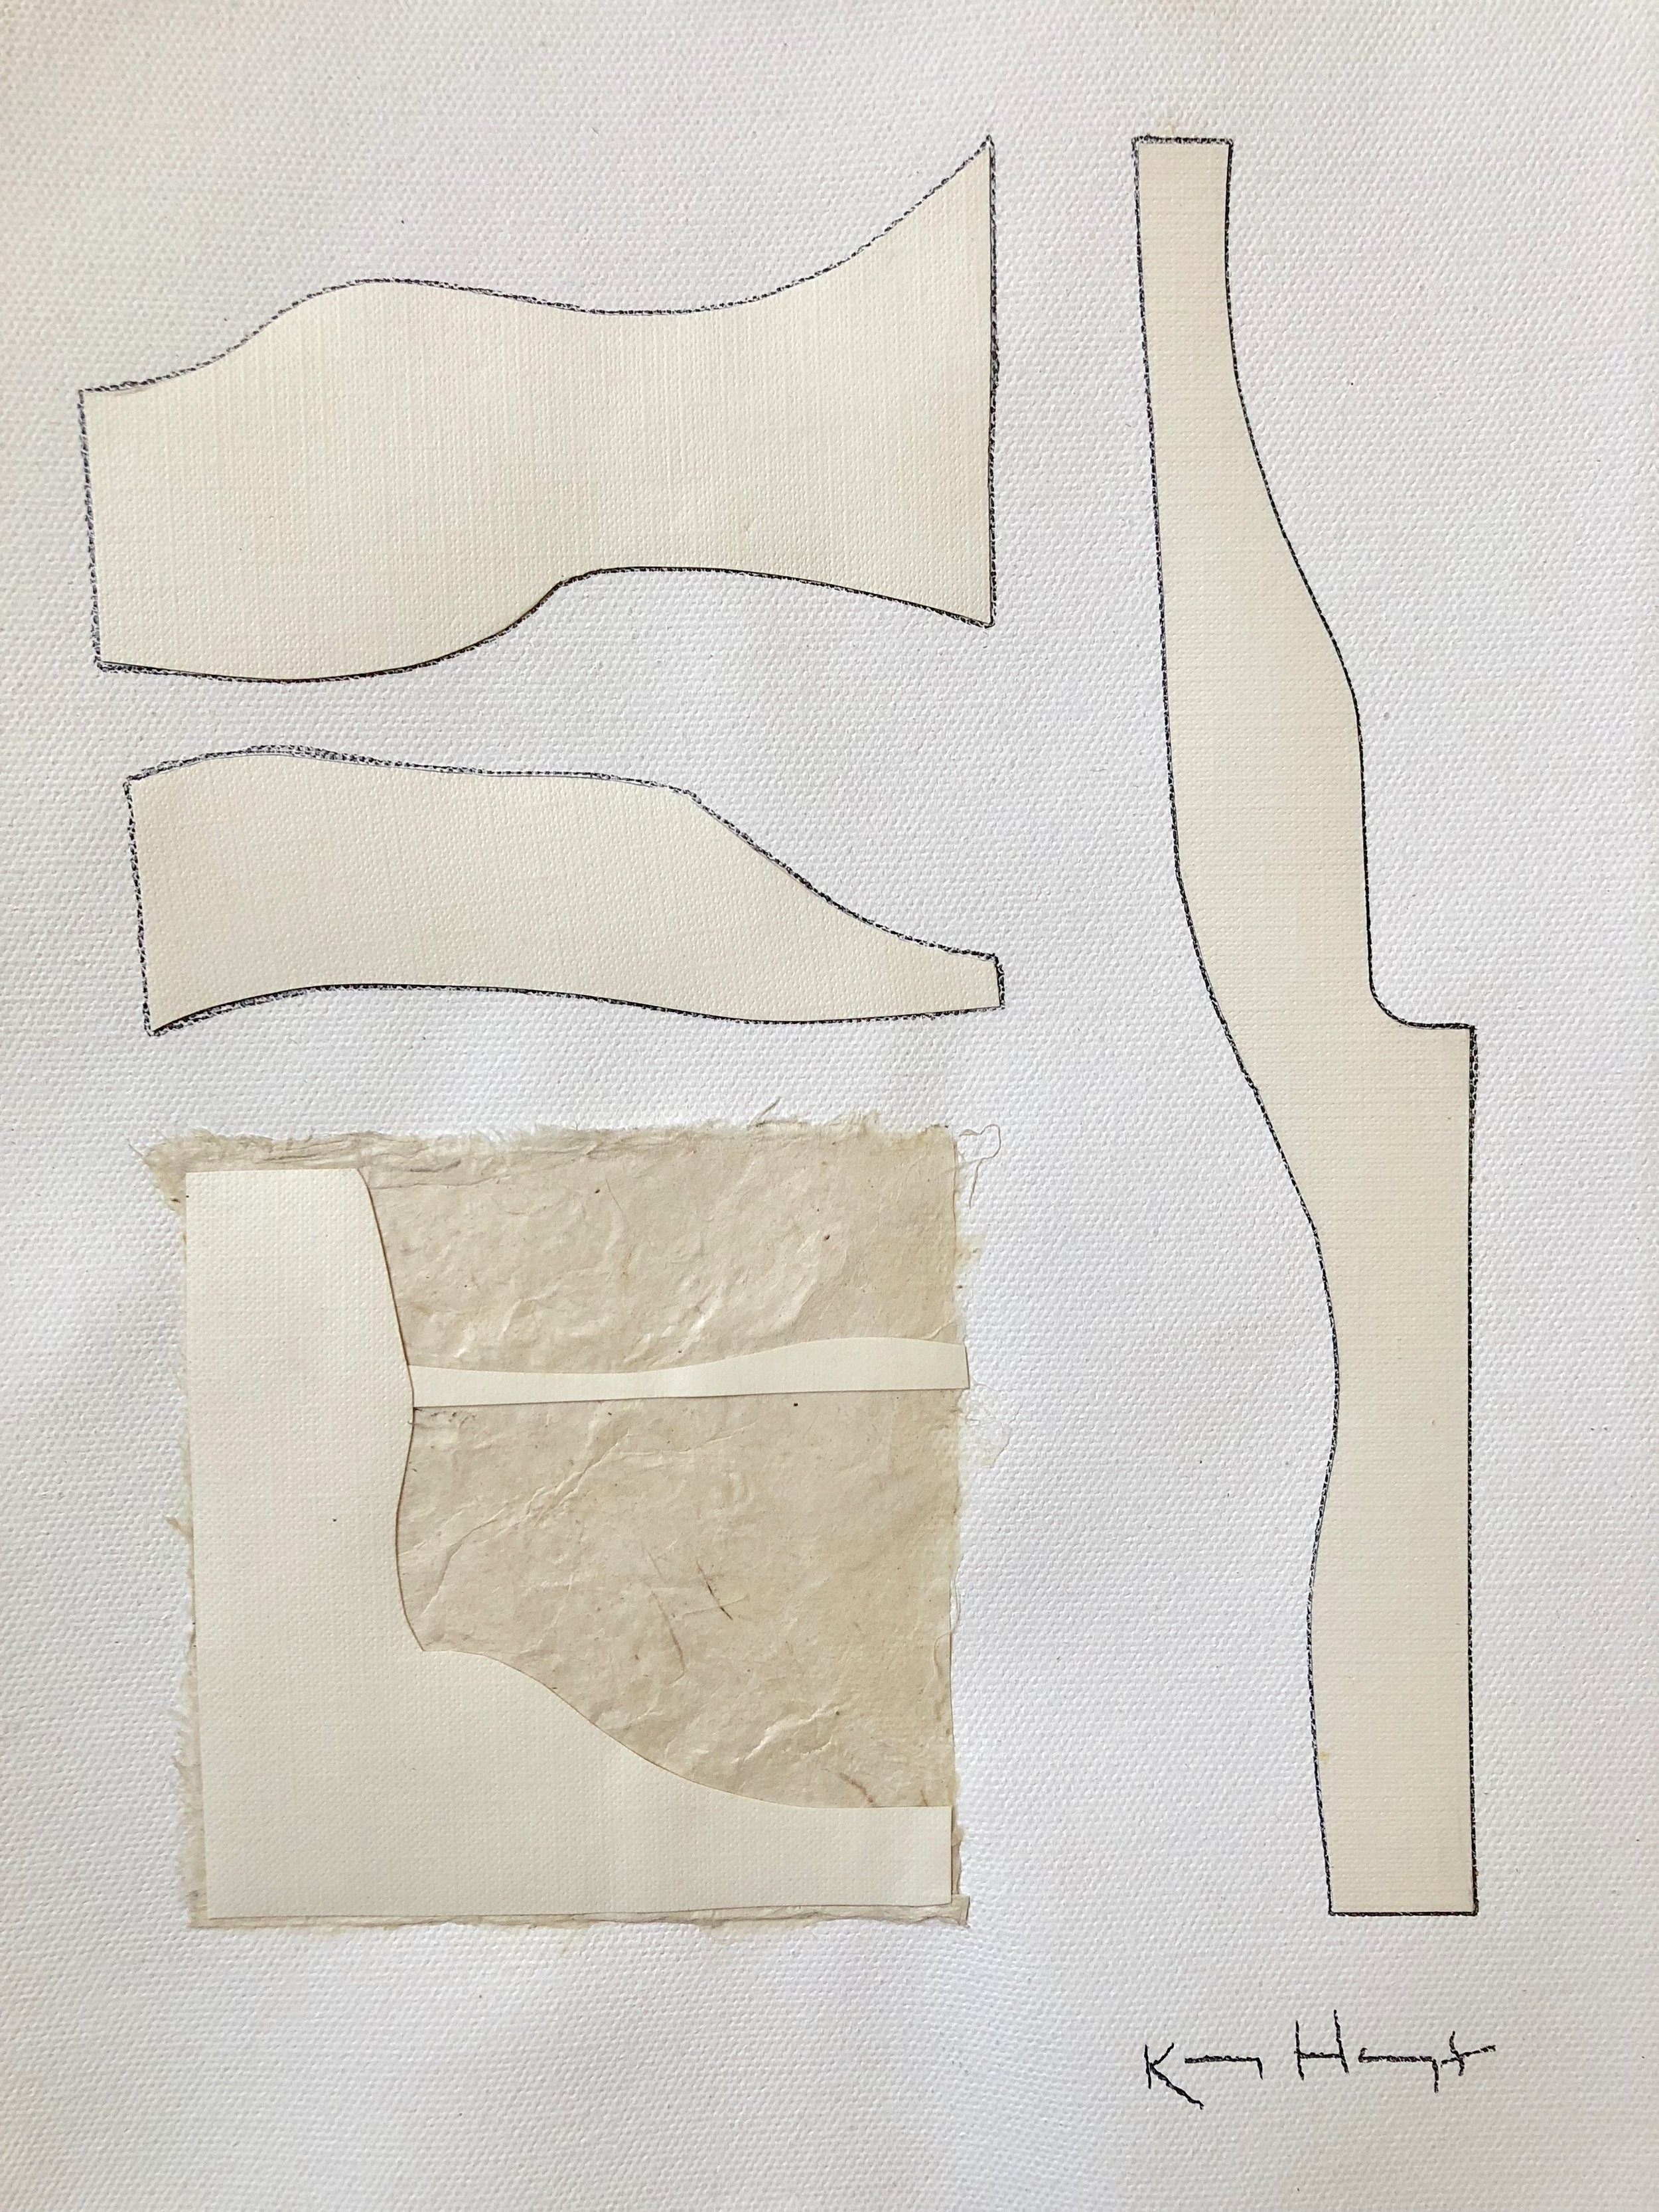 sculptures III, 9x12, paper and graphite on canvas sheet, 95.jpg